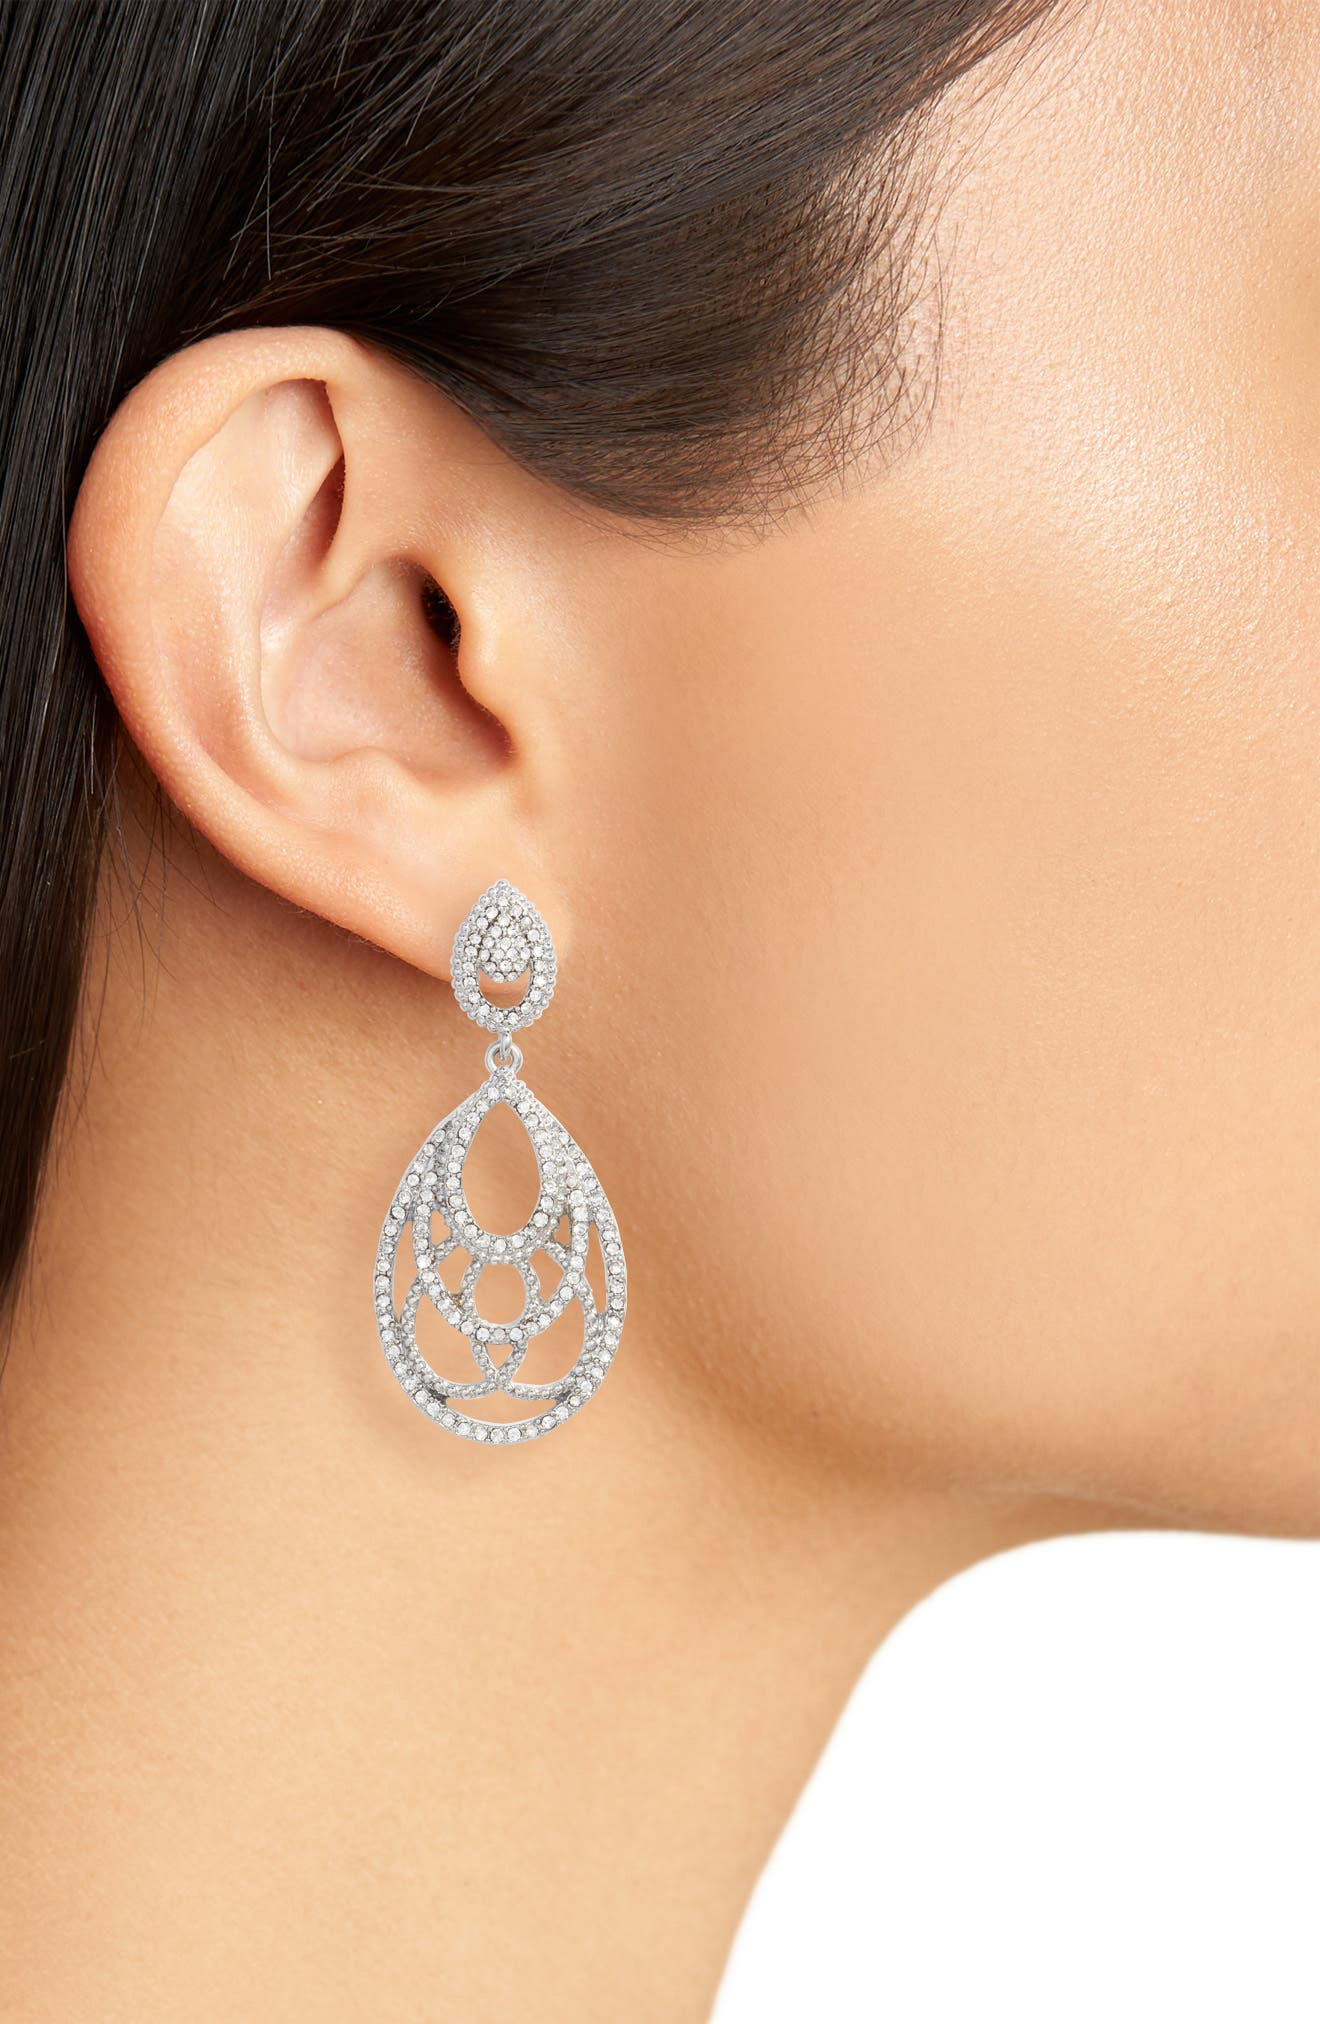 Openwork Crystal Drop Earrings,                             Alternate thumbnail 2, color,                             Crystal/ Silver